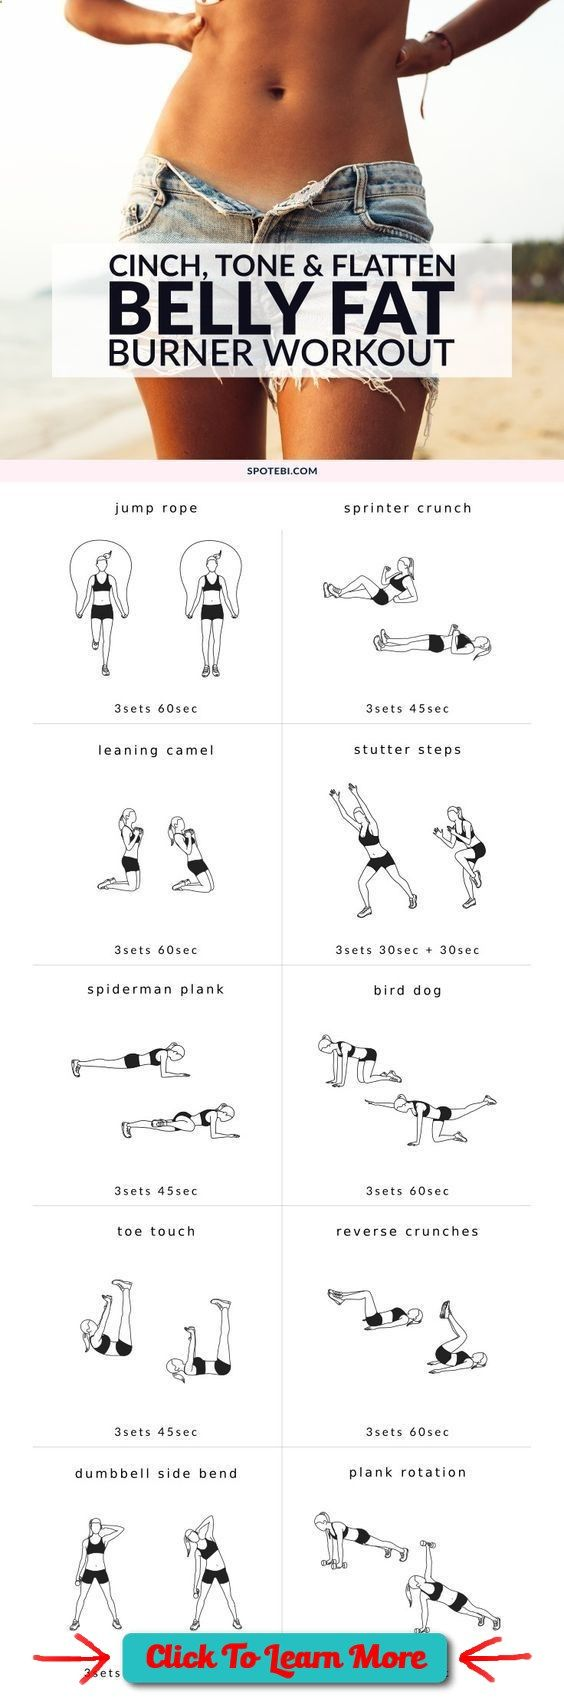 See more here ► www.youtube.com/... Tags: tips for teens to lose weight, tips for losing weight, good tips for losing weight fast - Flatten your abs and blast calories with these 10 moves! A belly fat burner workout to tone up your #health #fitness #weigh http://weightlosssucesss.pw/the-5-commandments-of-smart-dieting/ (fat burner)